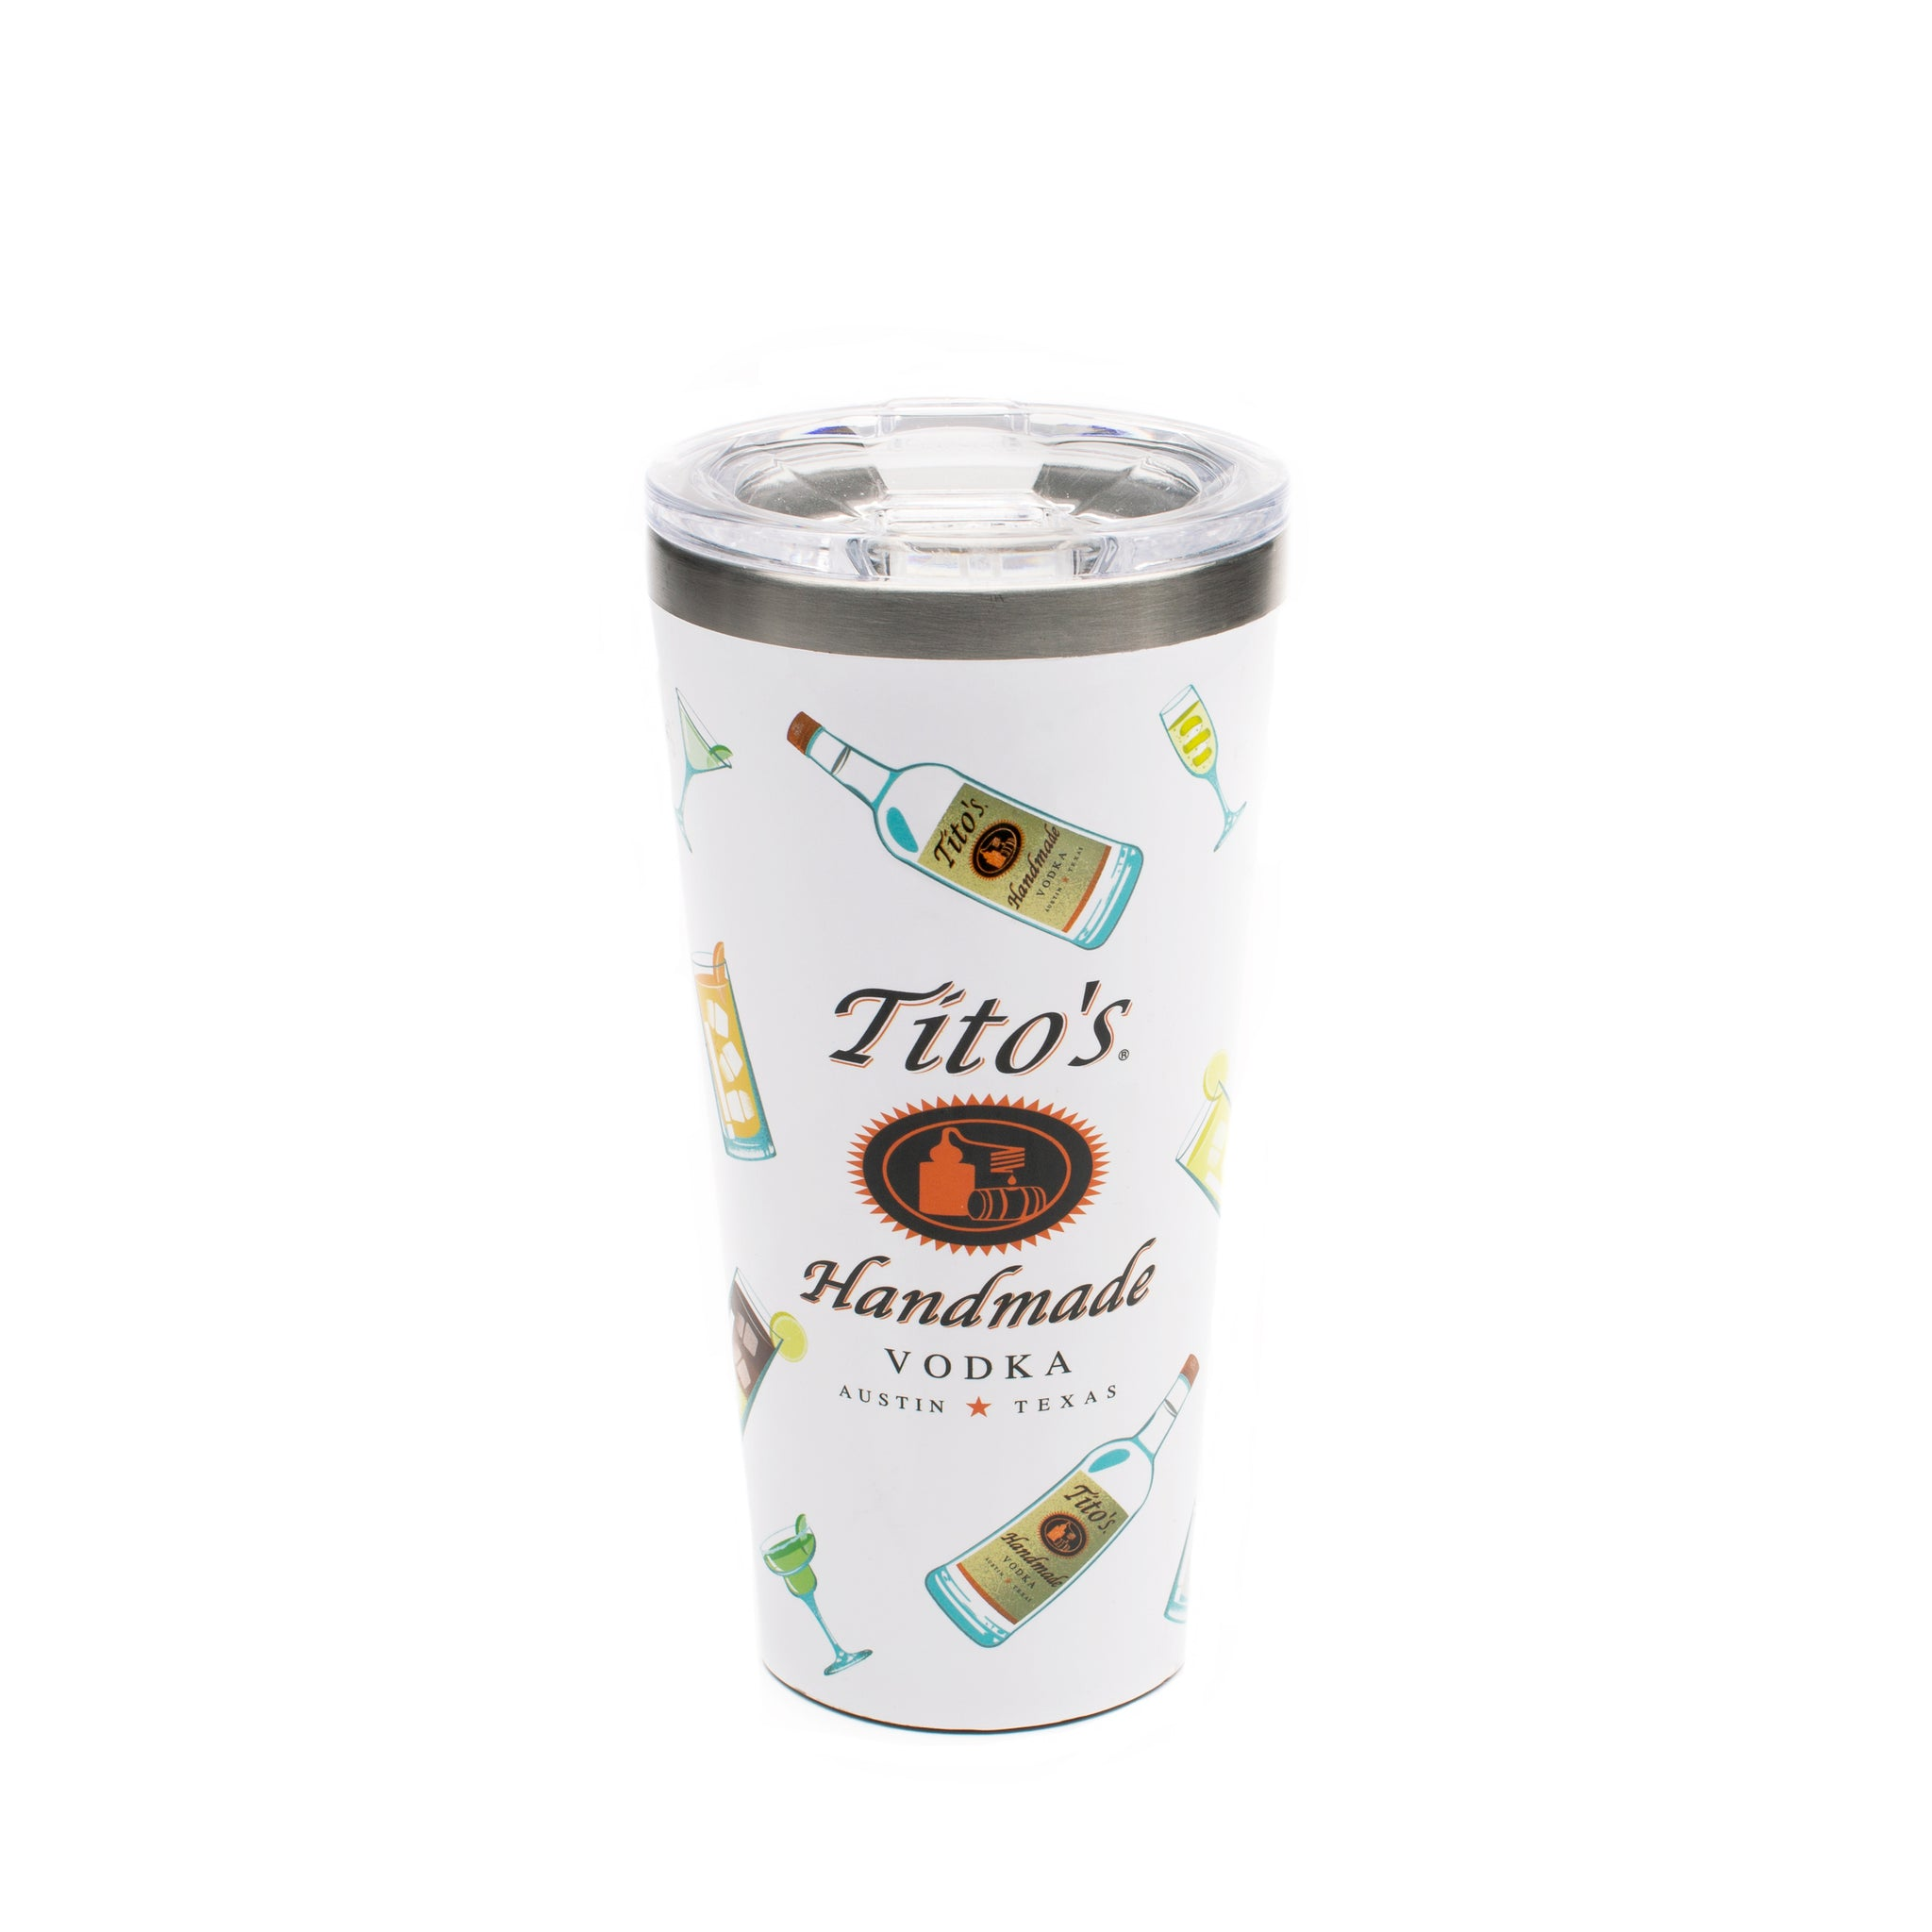 Front of white Corkcicle tumbler with Tito's Handmade Vodka logo, cocktails and Tito's bottle illustrations